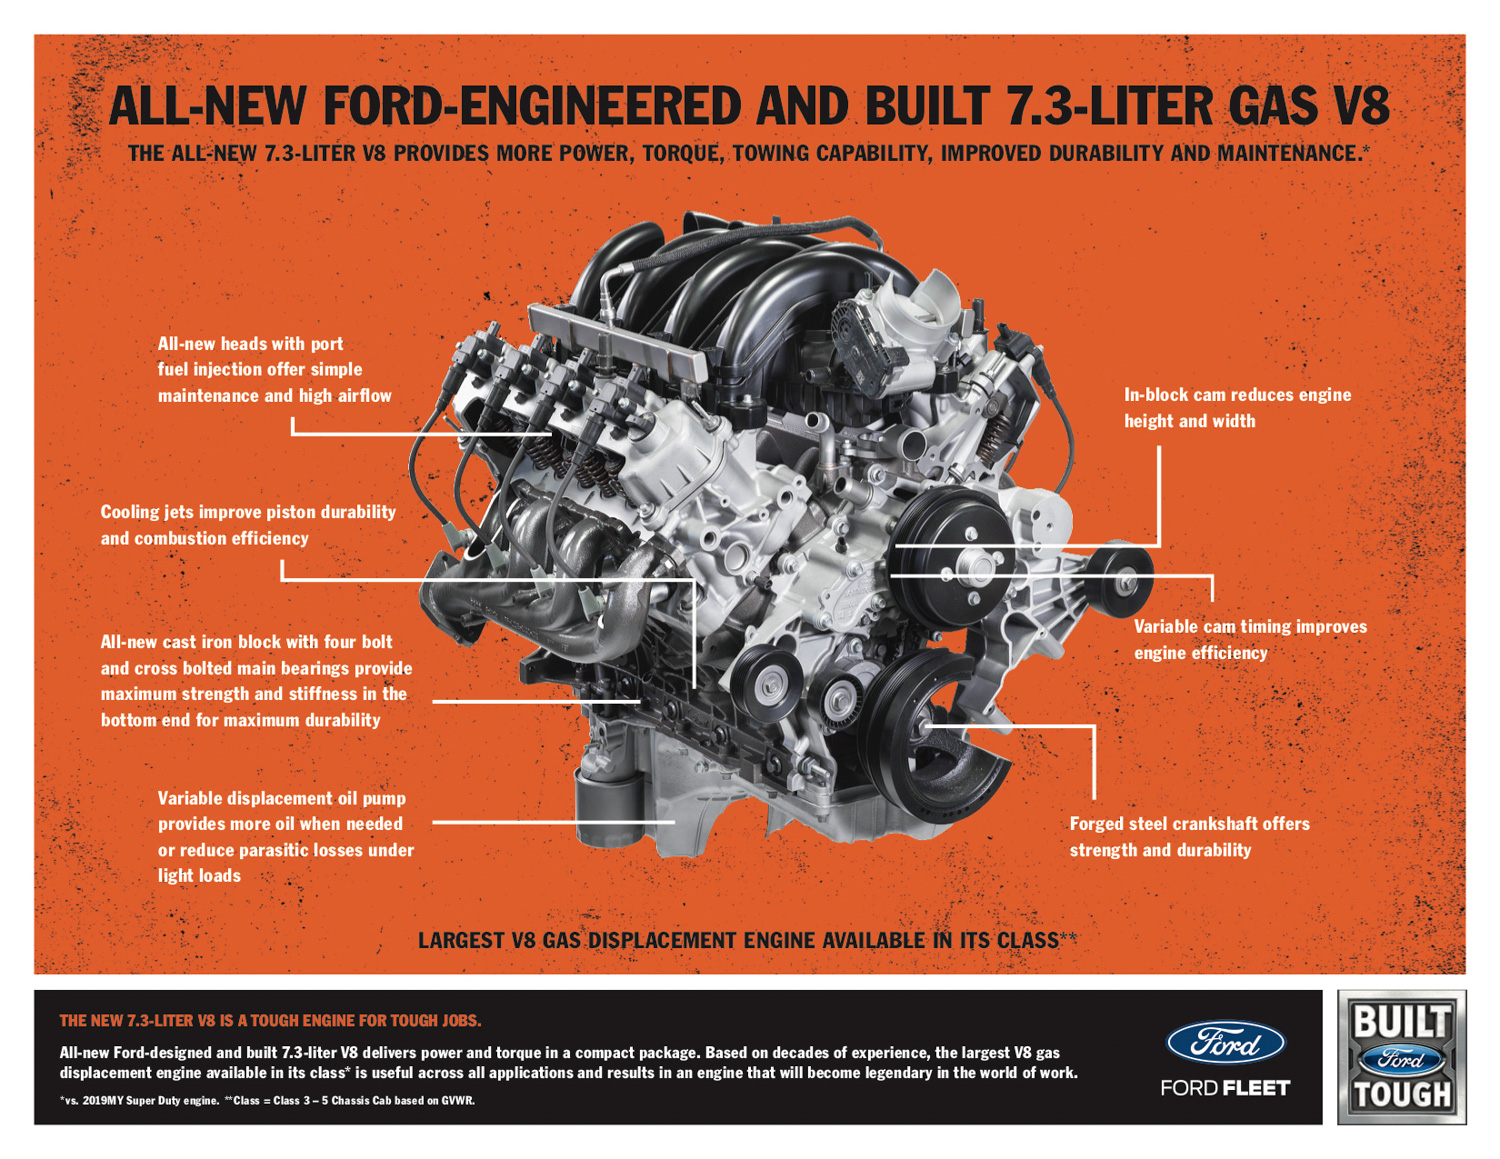 2020 Ford F-250 Super Duty new engine